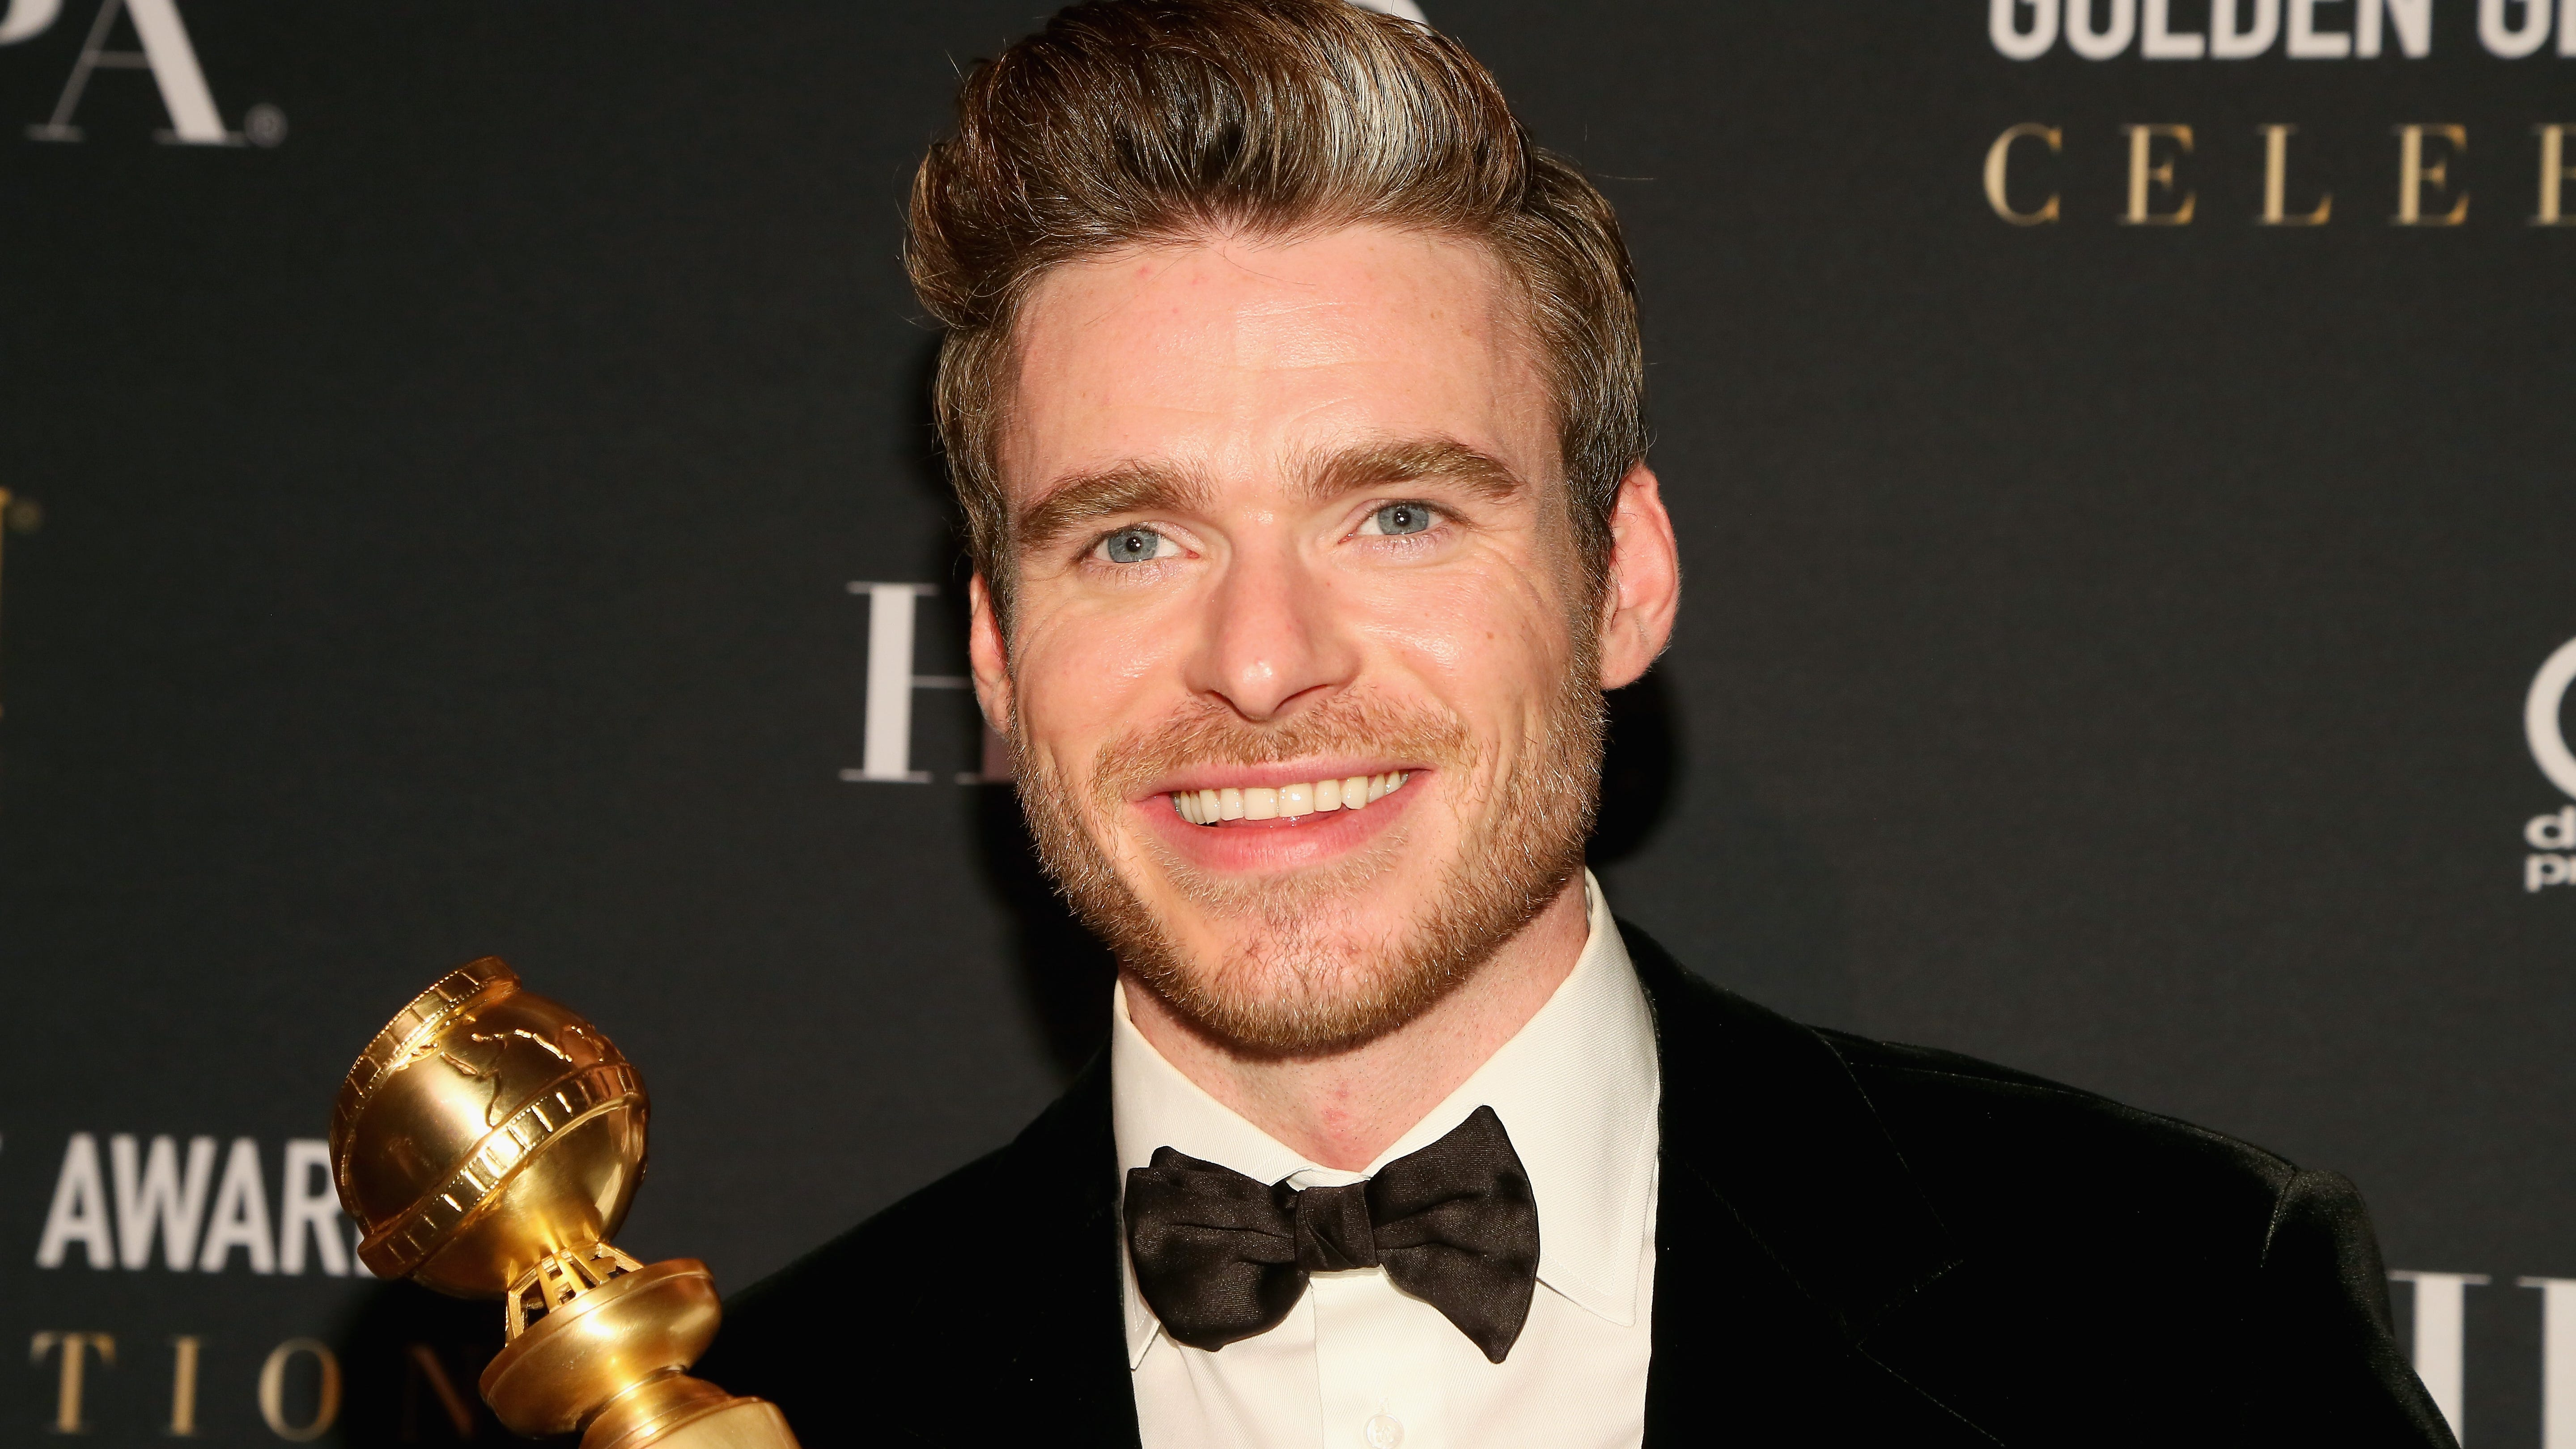 'Bodyguard' star Richard Madden thanks dad for saving him from awkward moment at Golden Globes